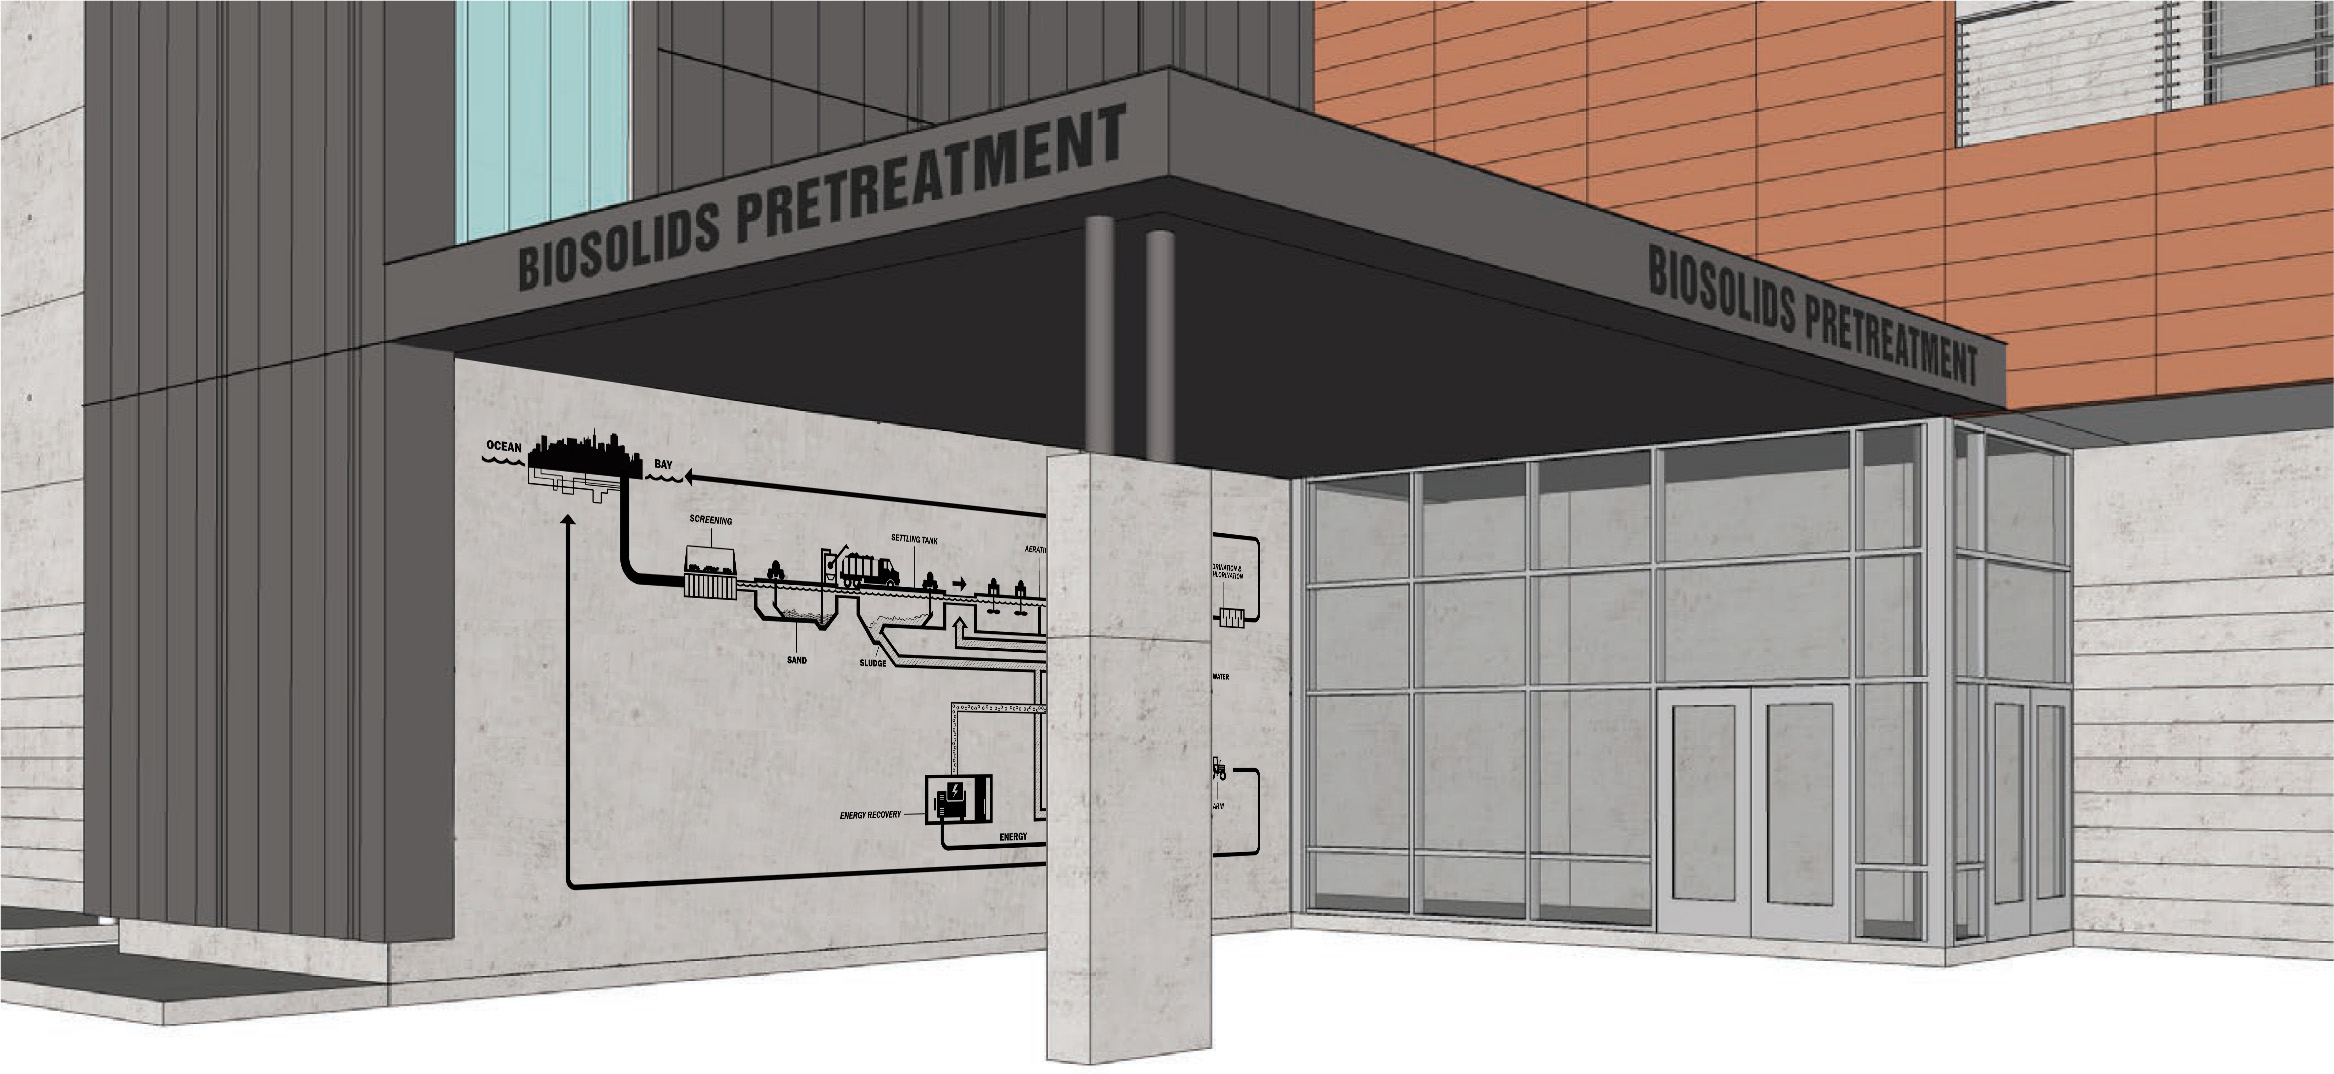 Diagram on Building to show where visitors / employees are in the process